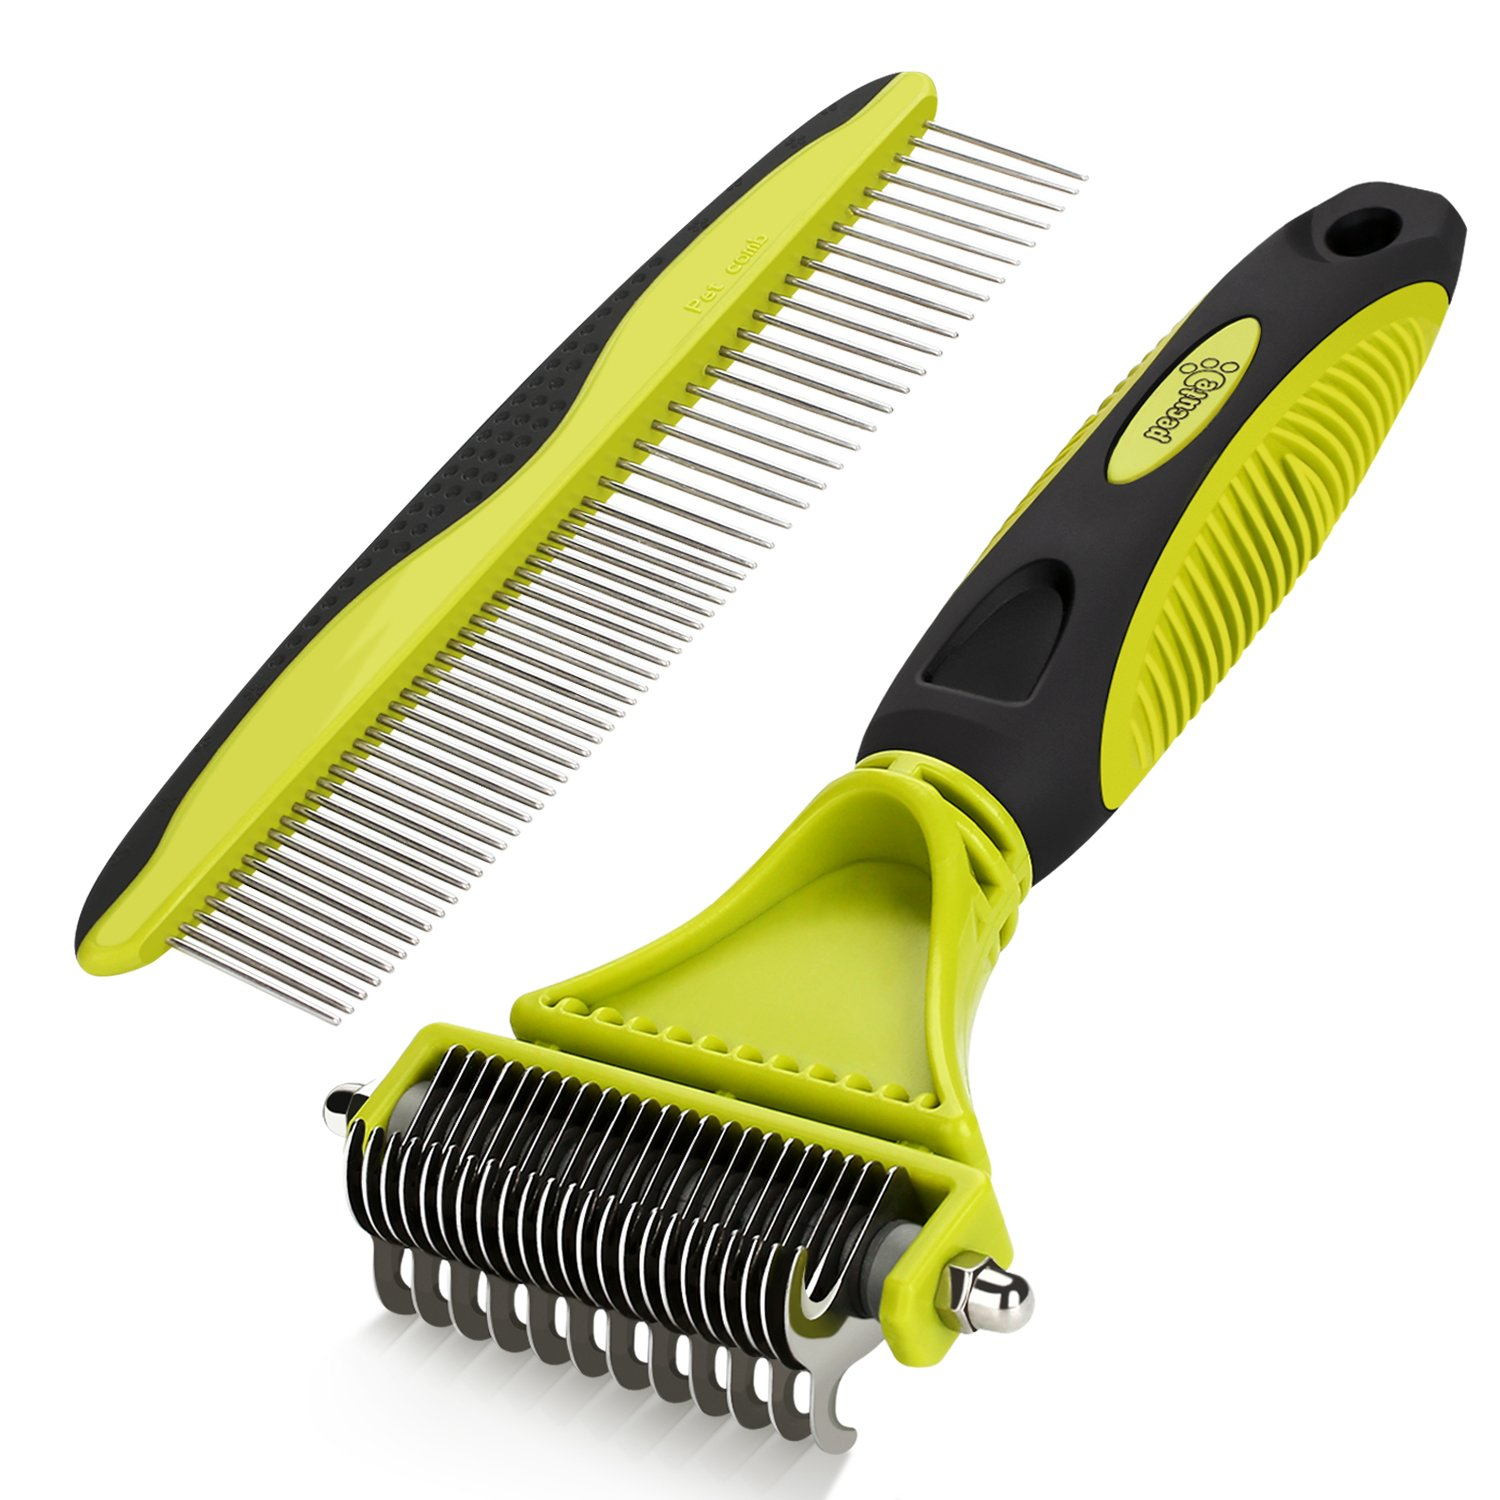 Dematting Comb Grooming Tool Kit for Dog & Cat Double Sided Blade Rake Comb with Grooming Brush Loose Undercoat, Mats, Tangles and Knots Removal for Long Thick Short Pet by Pecute (Image #1)